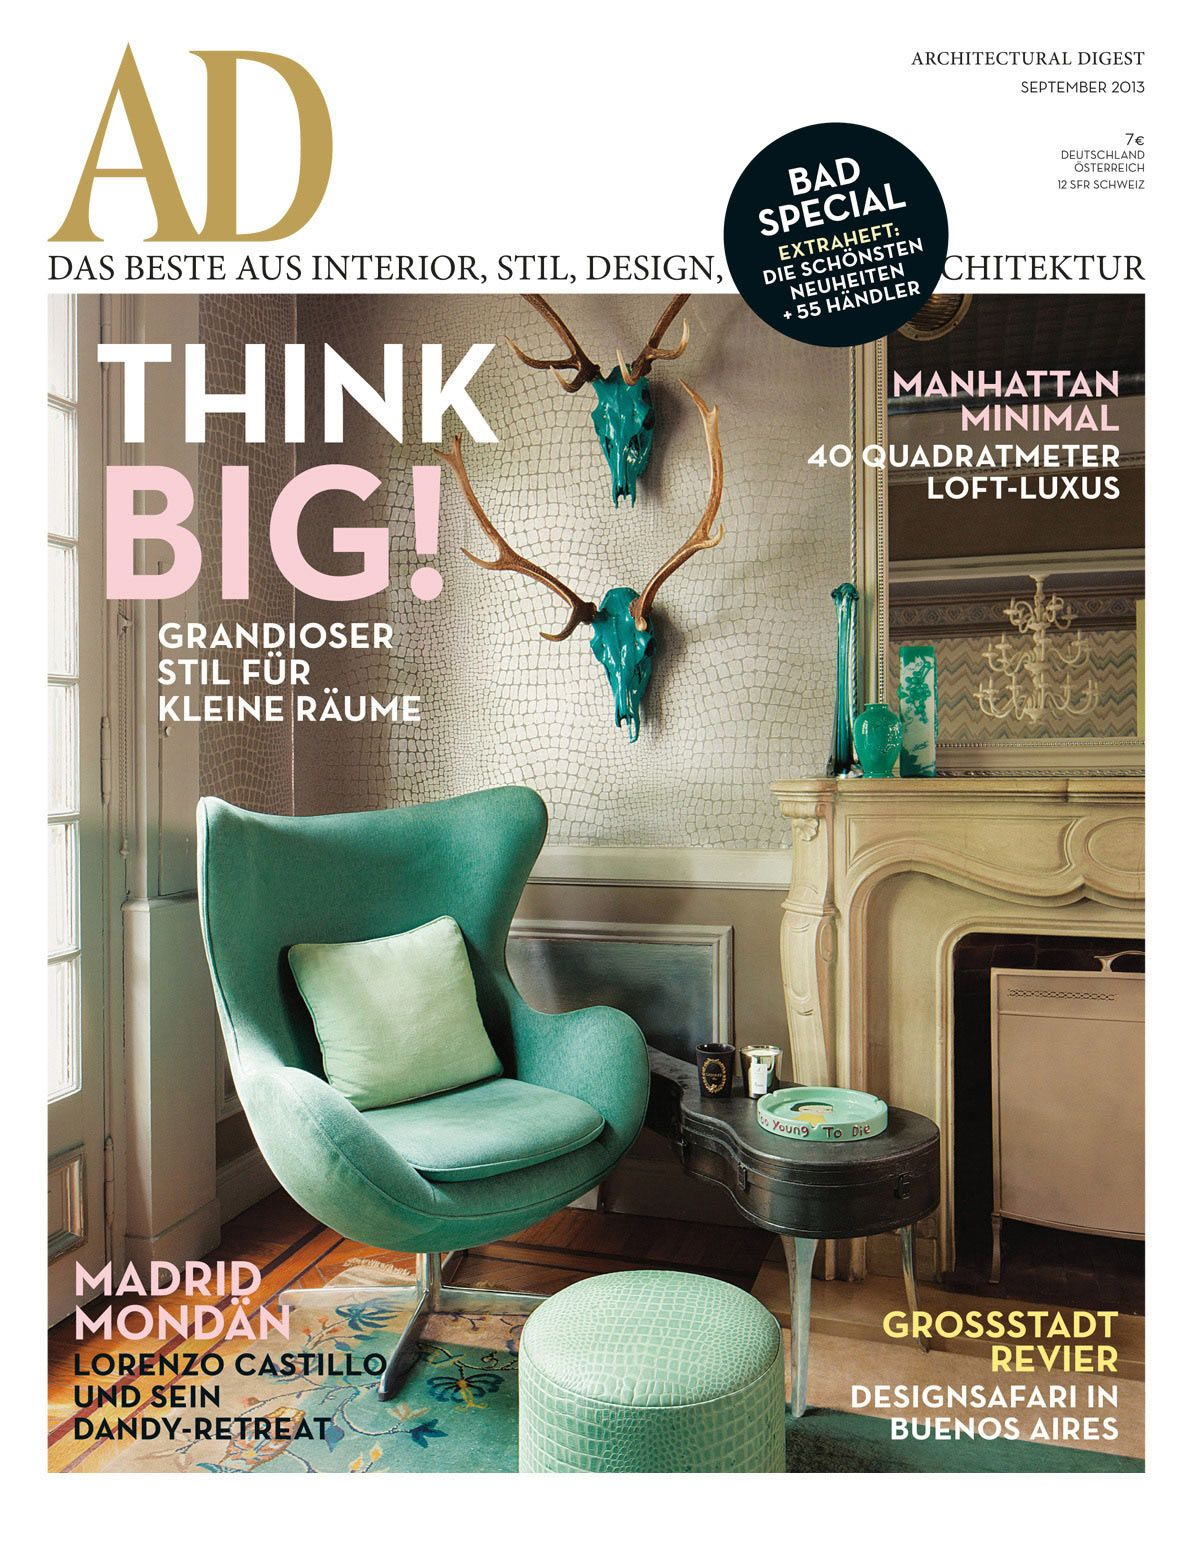 Bad Design Zeitschrift cover ad 09 2013 fp for the home ads egg chair and